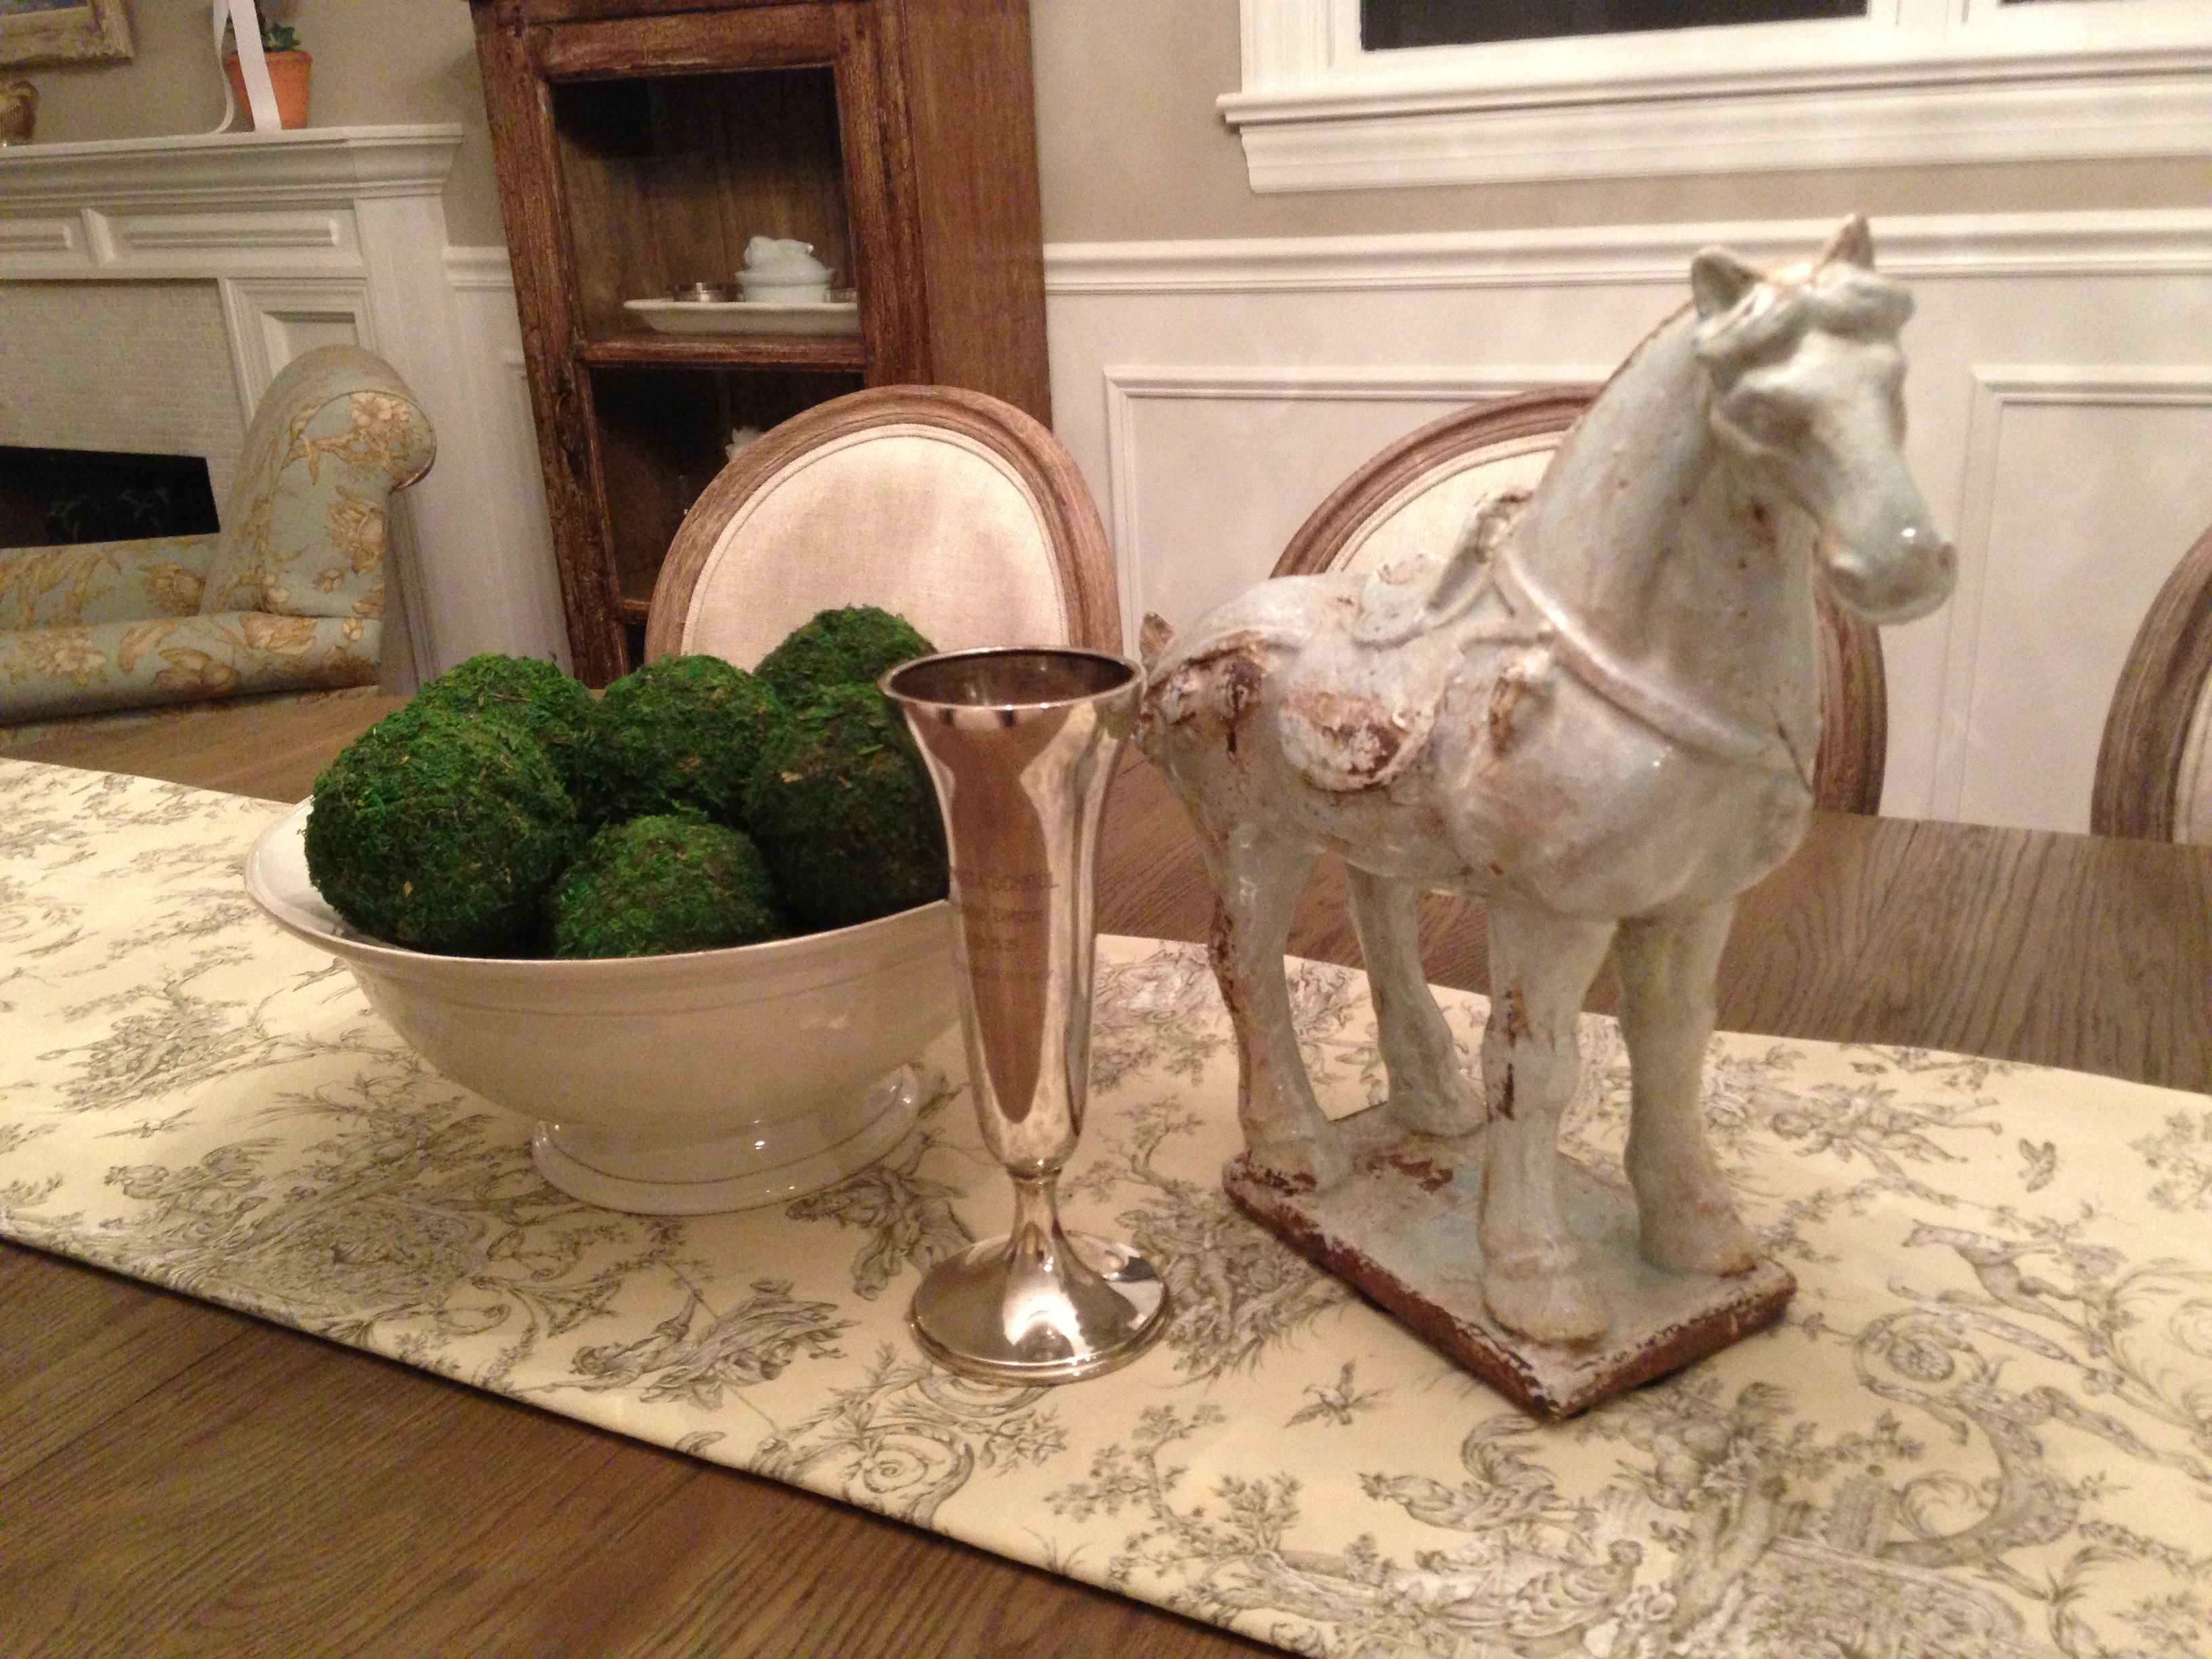 The homeowner displays a cherished trophy cup from her grandfather's equestrian days, reimagined as part of the centerpiece vignette. What a beautiful and meaningful tribute! Handmade moss balls are gathered in a rustic cream pottery bowl, while a ceramic steed stands guard.  www.ShamrockHillDesigns.com (photo credit: Anne Brinsmade)